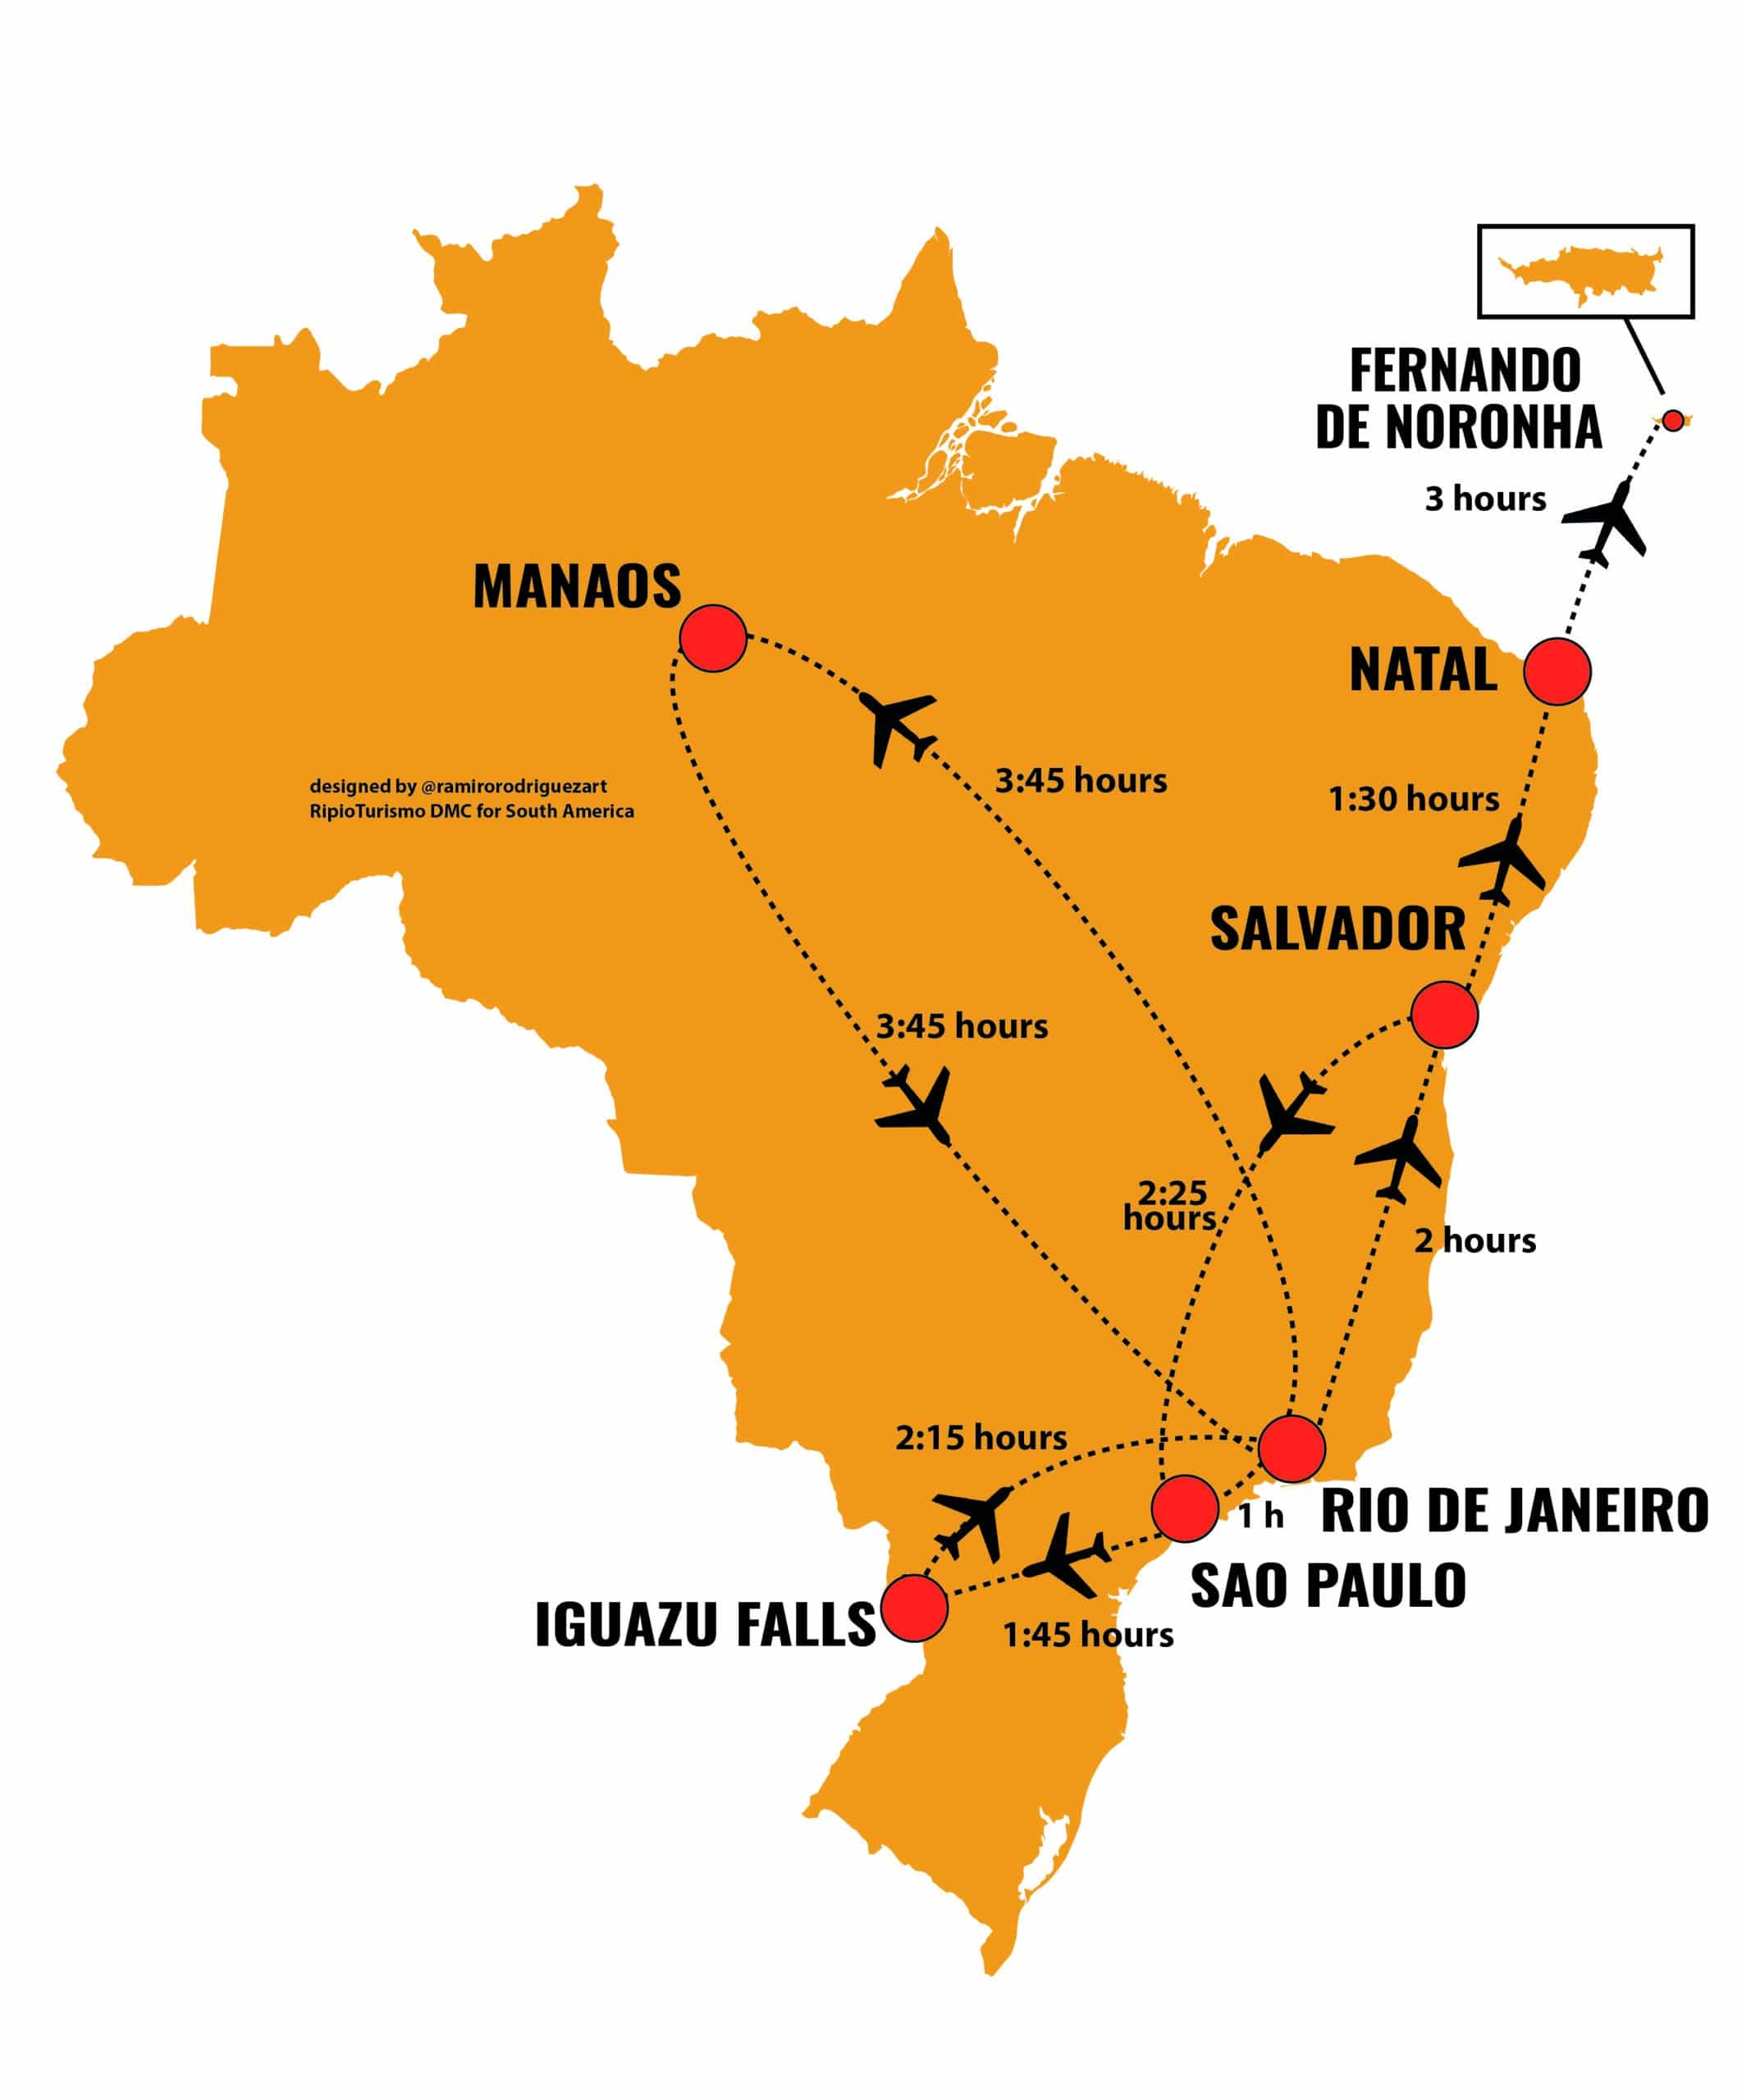 Approximated flight times between main destinations in Brazil - RipioTurismo DMC for Brazil